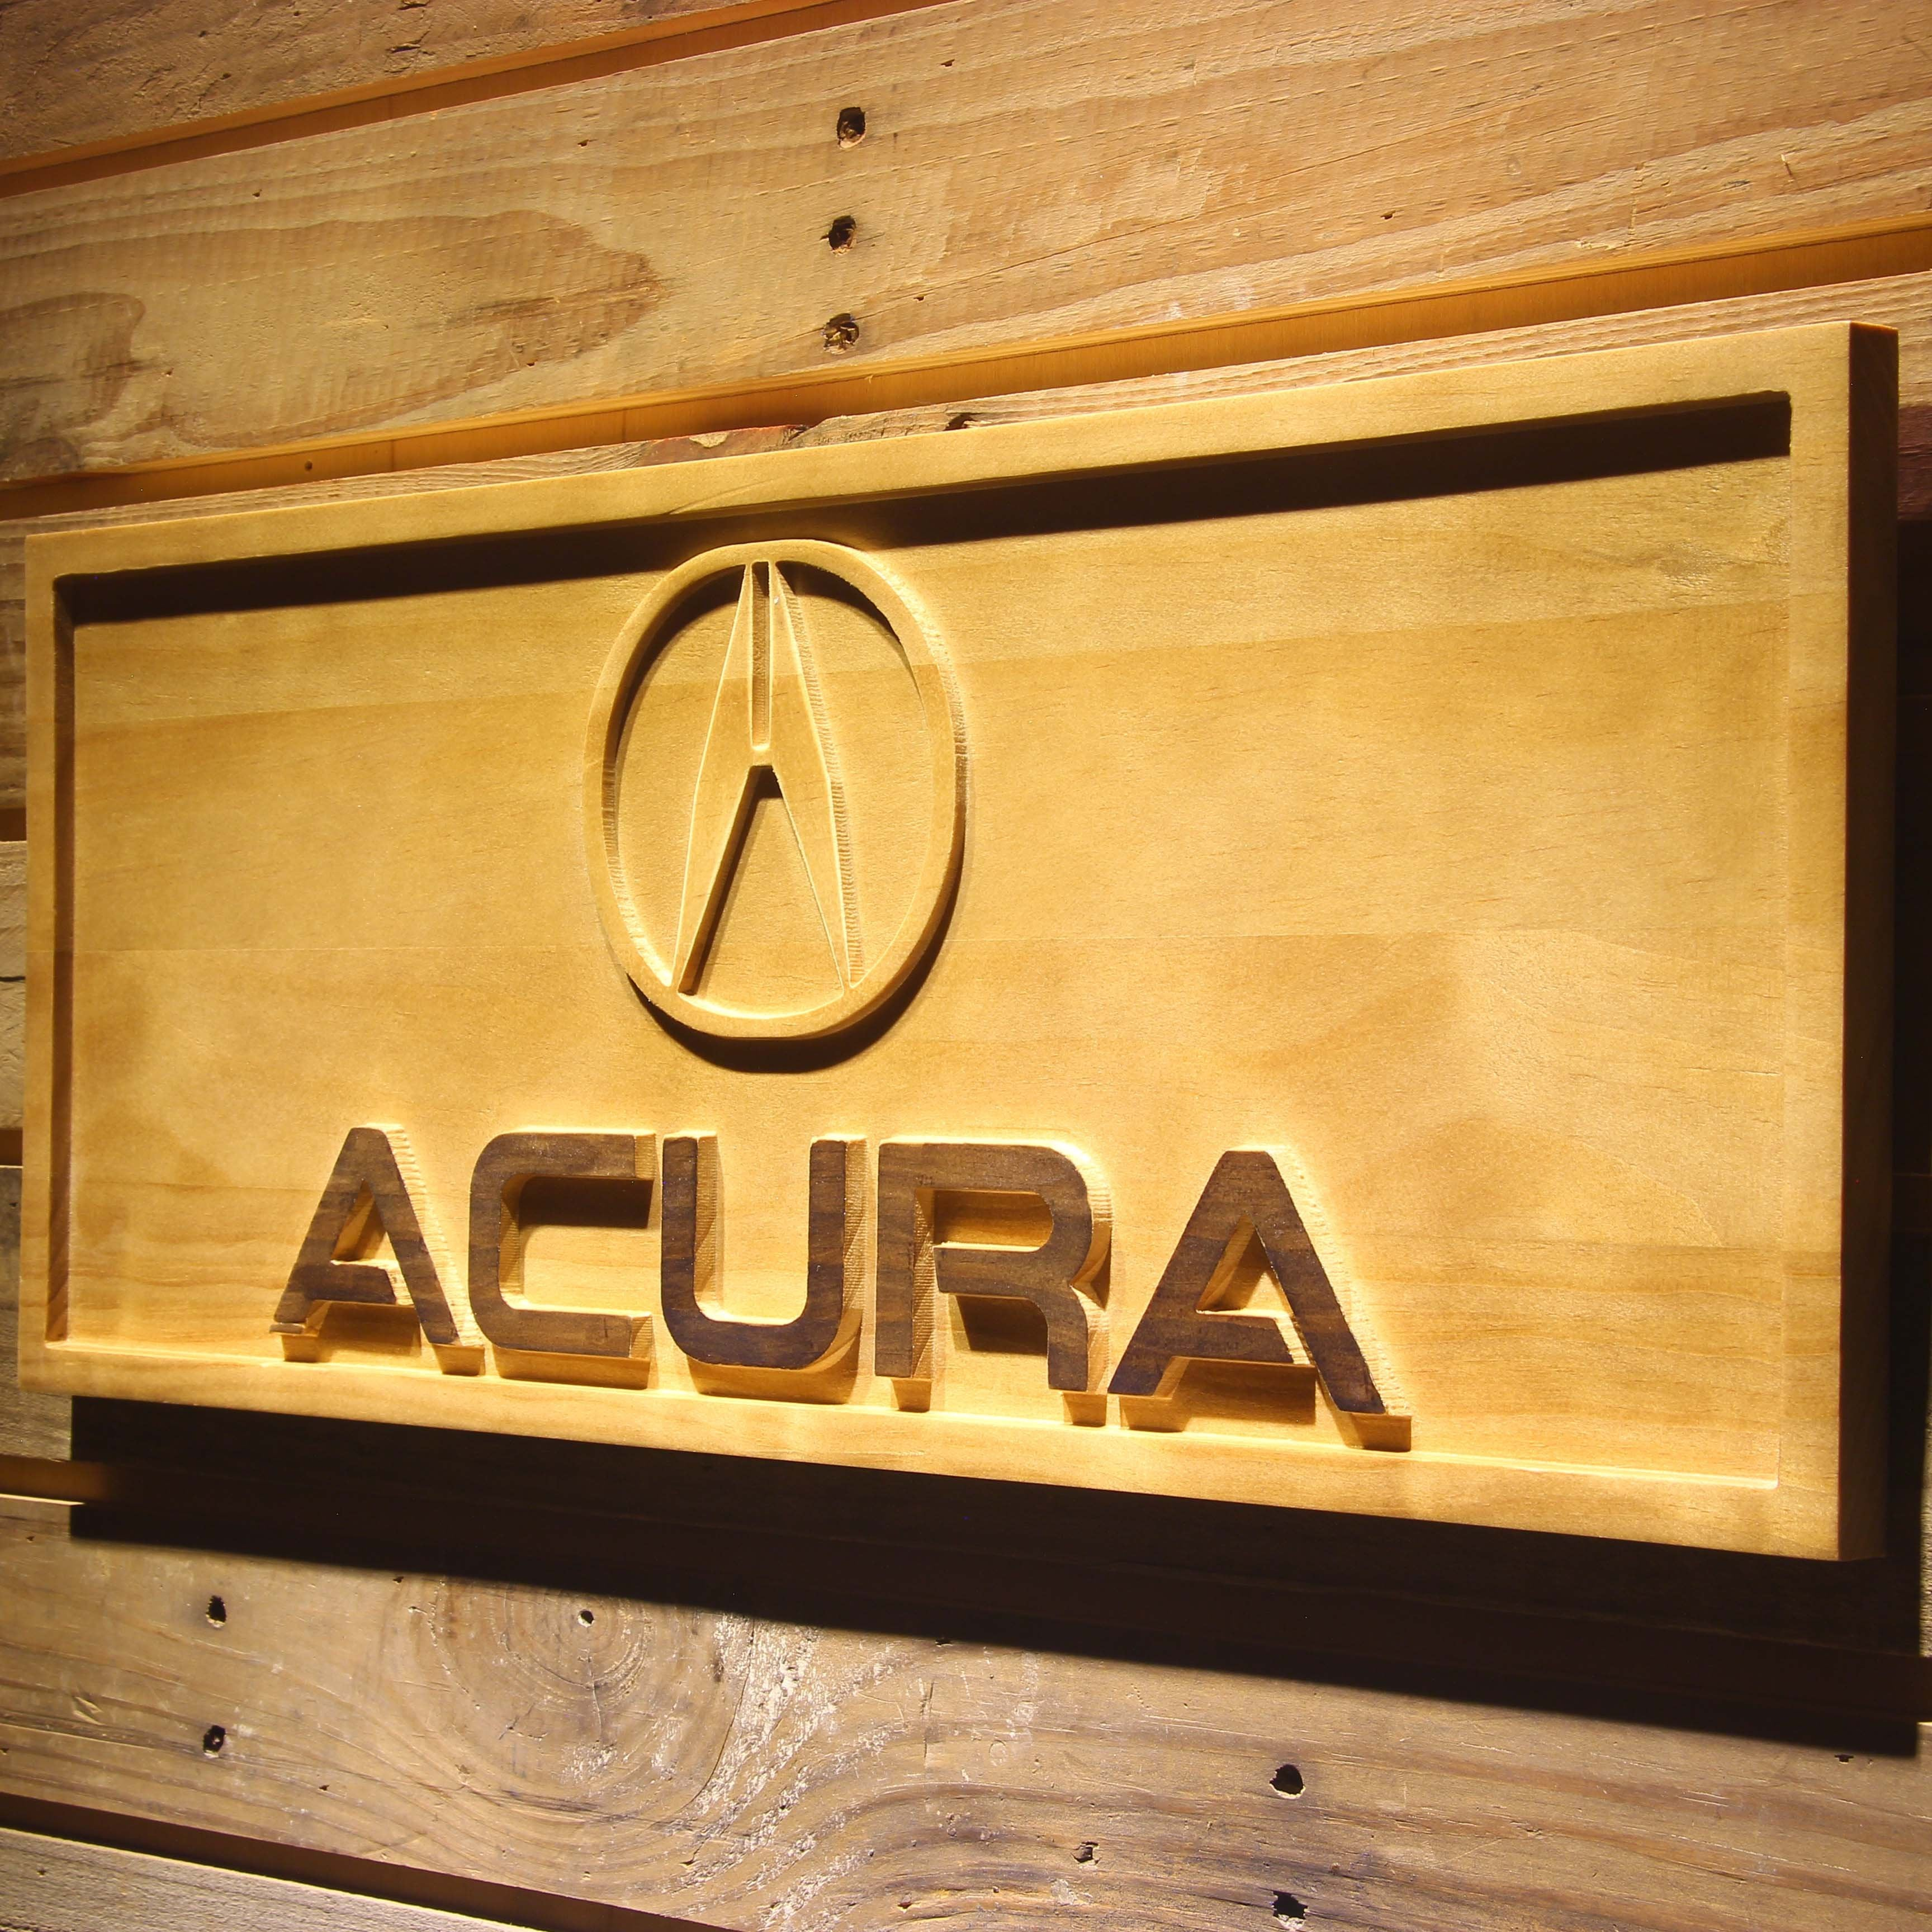 Acura Wooden Sign